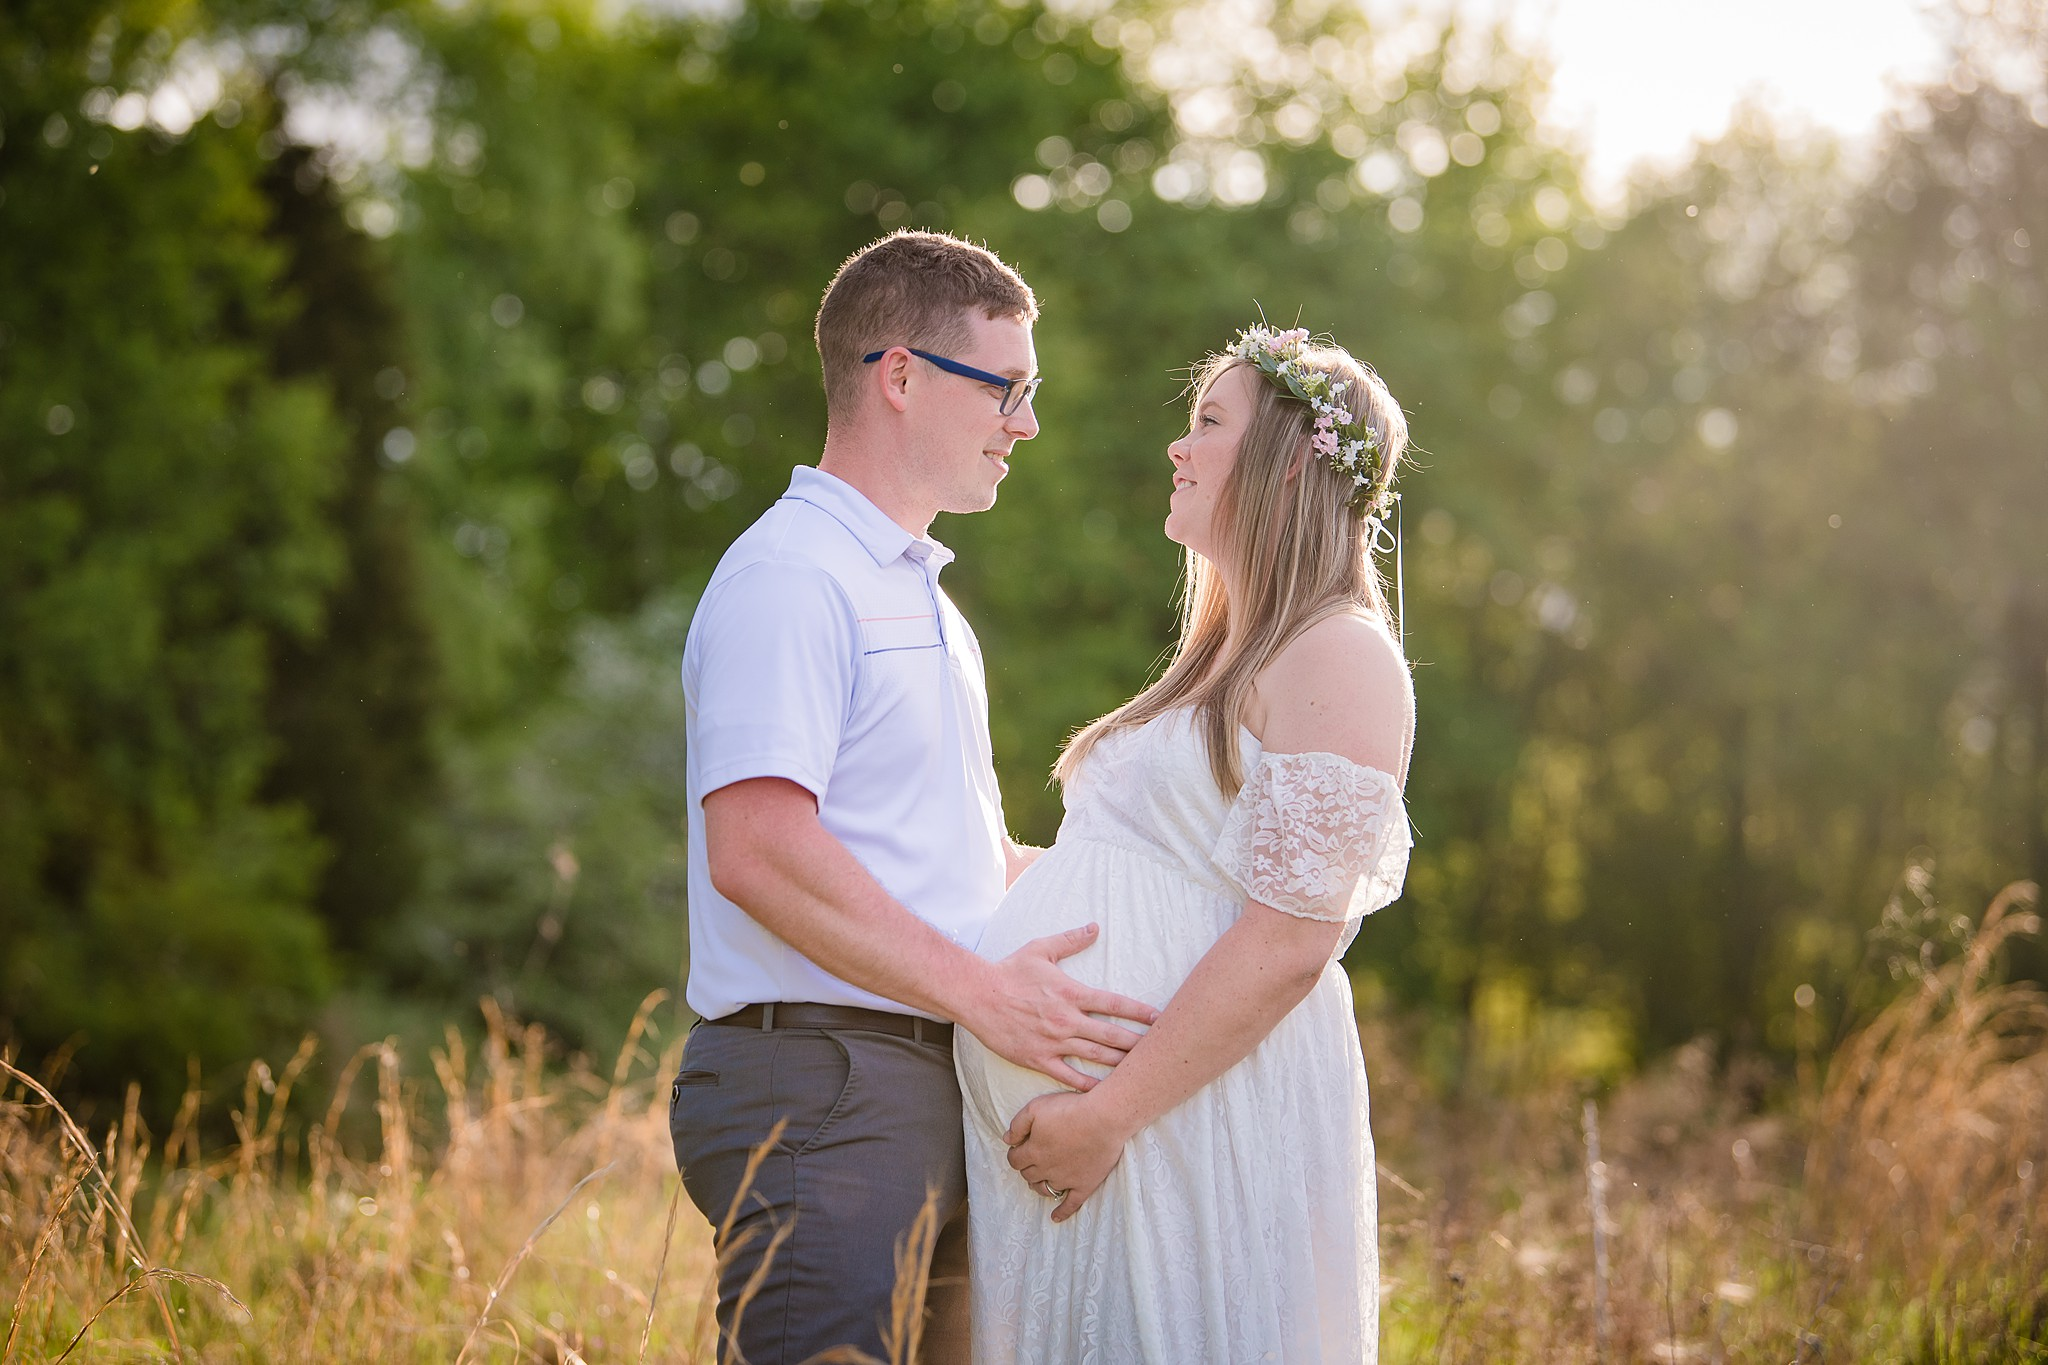 couples maternity session in a field with a flower crown